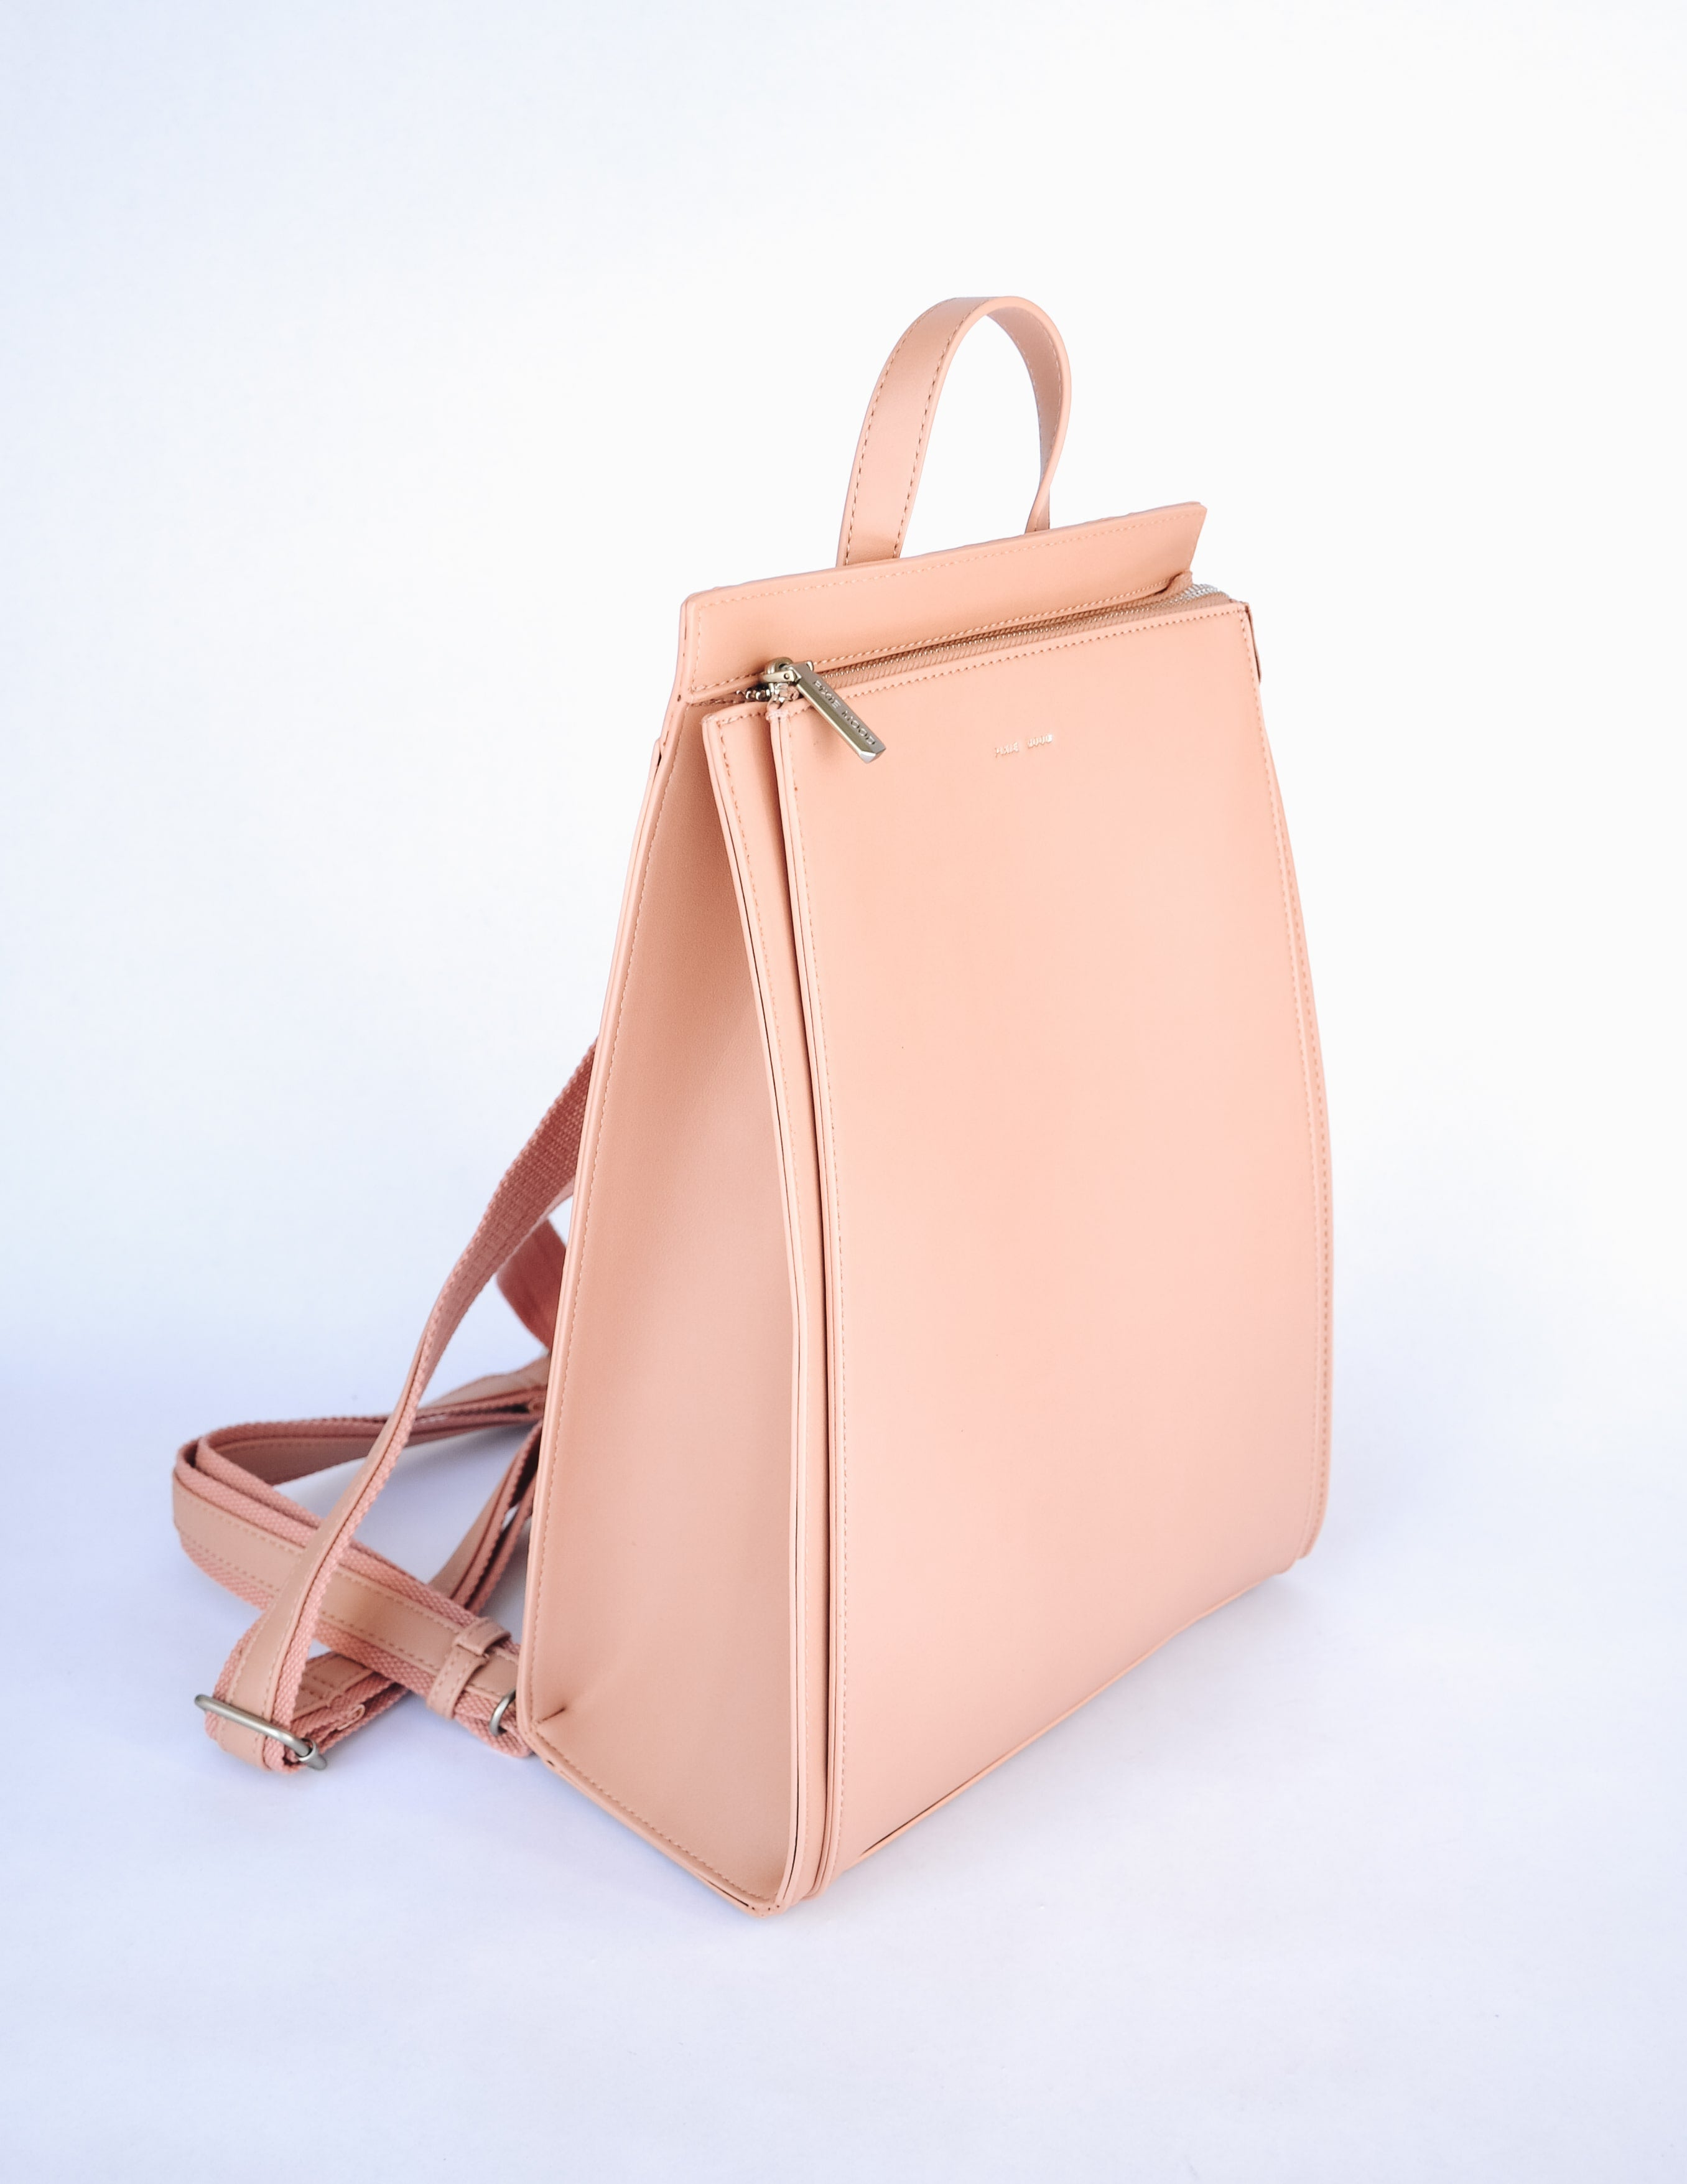 Pixie mood apricot carrie backpack with top zipper and top handle